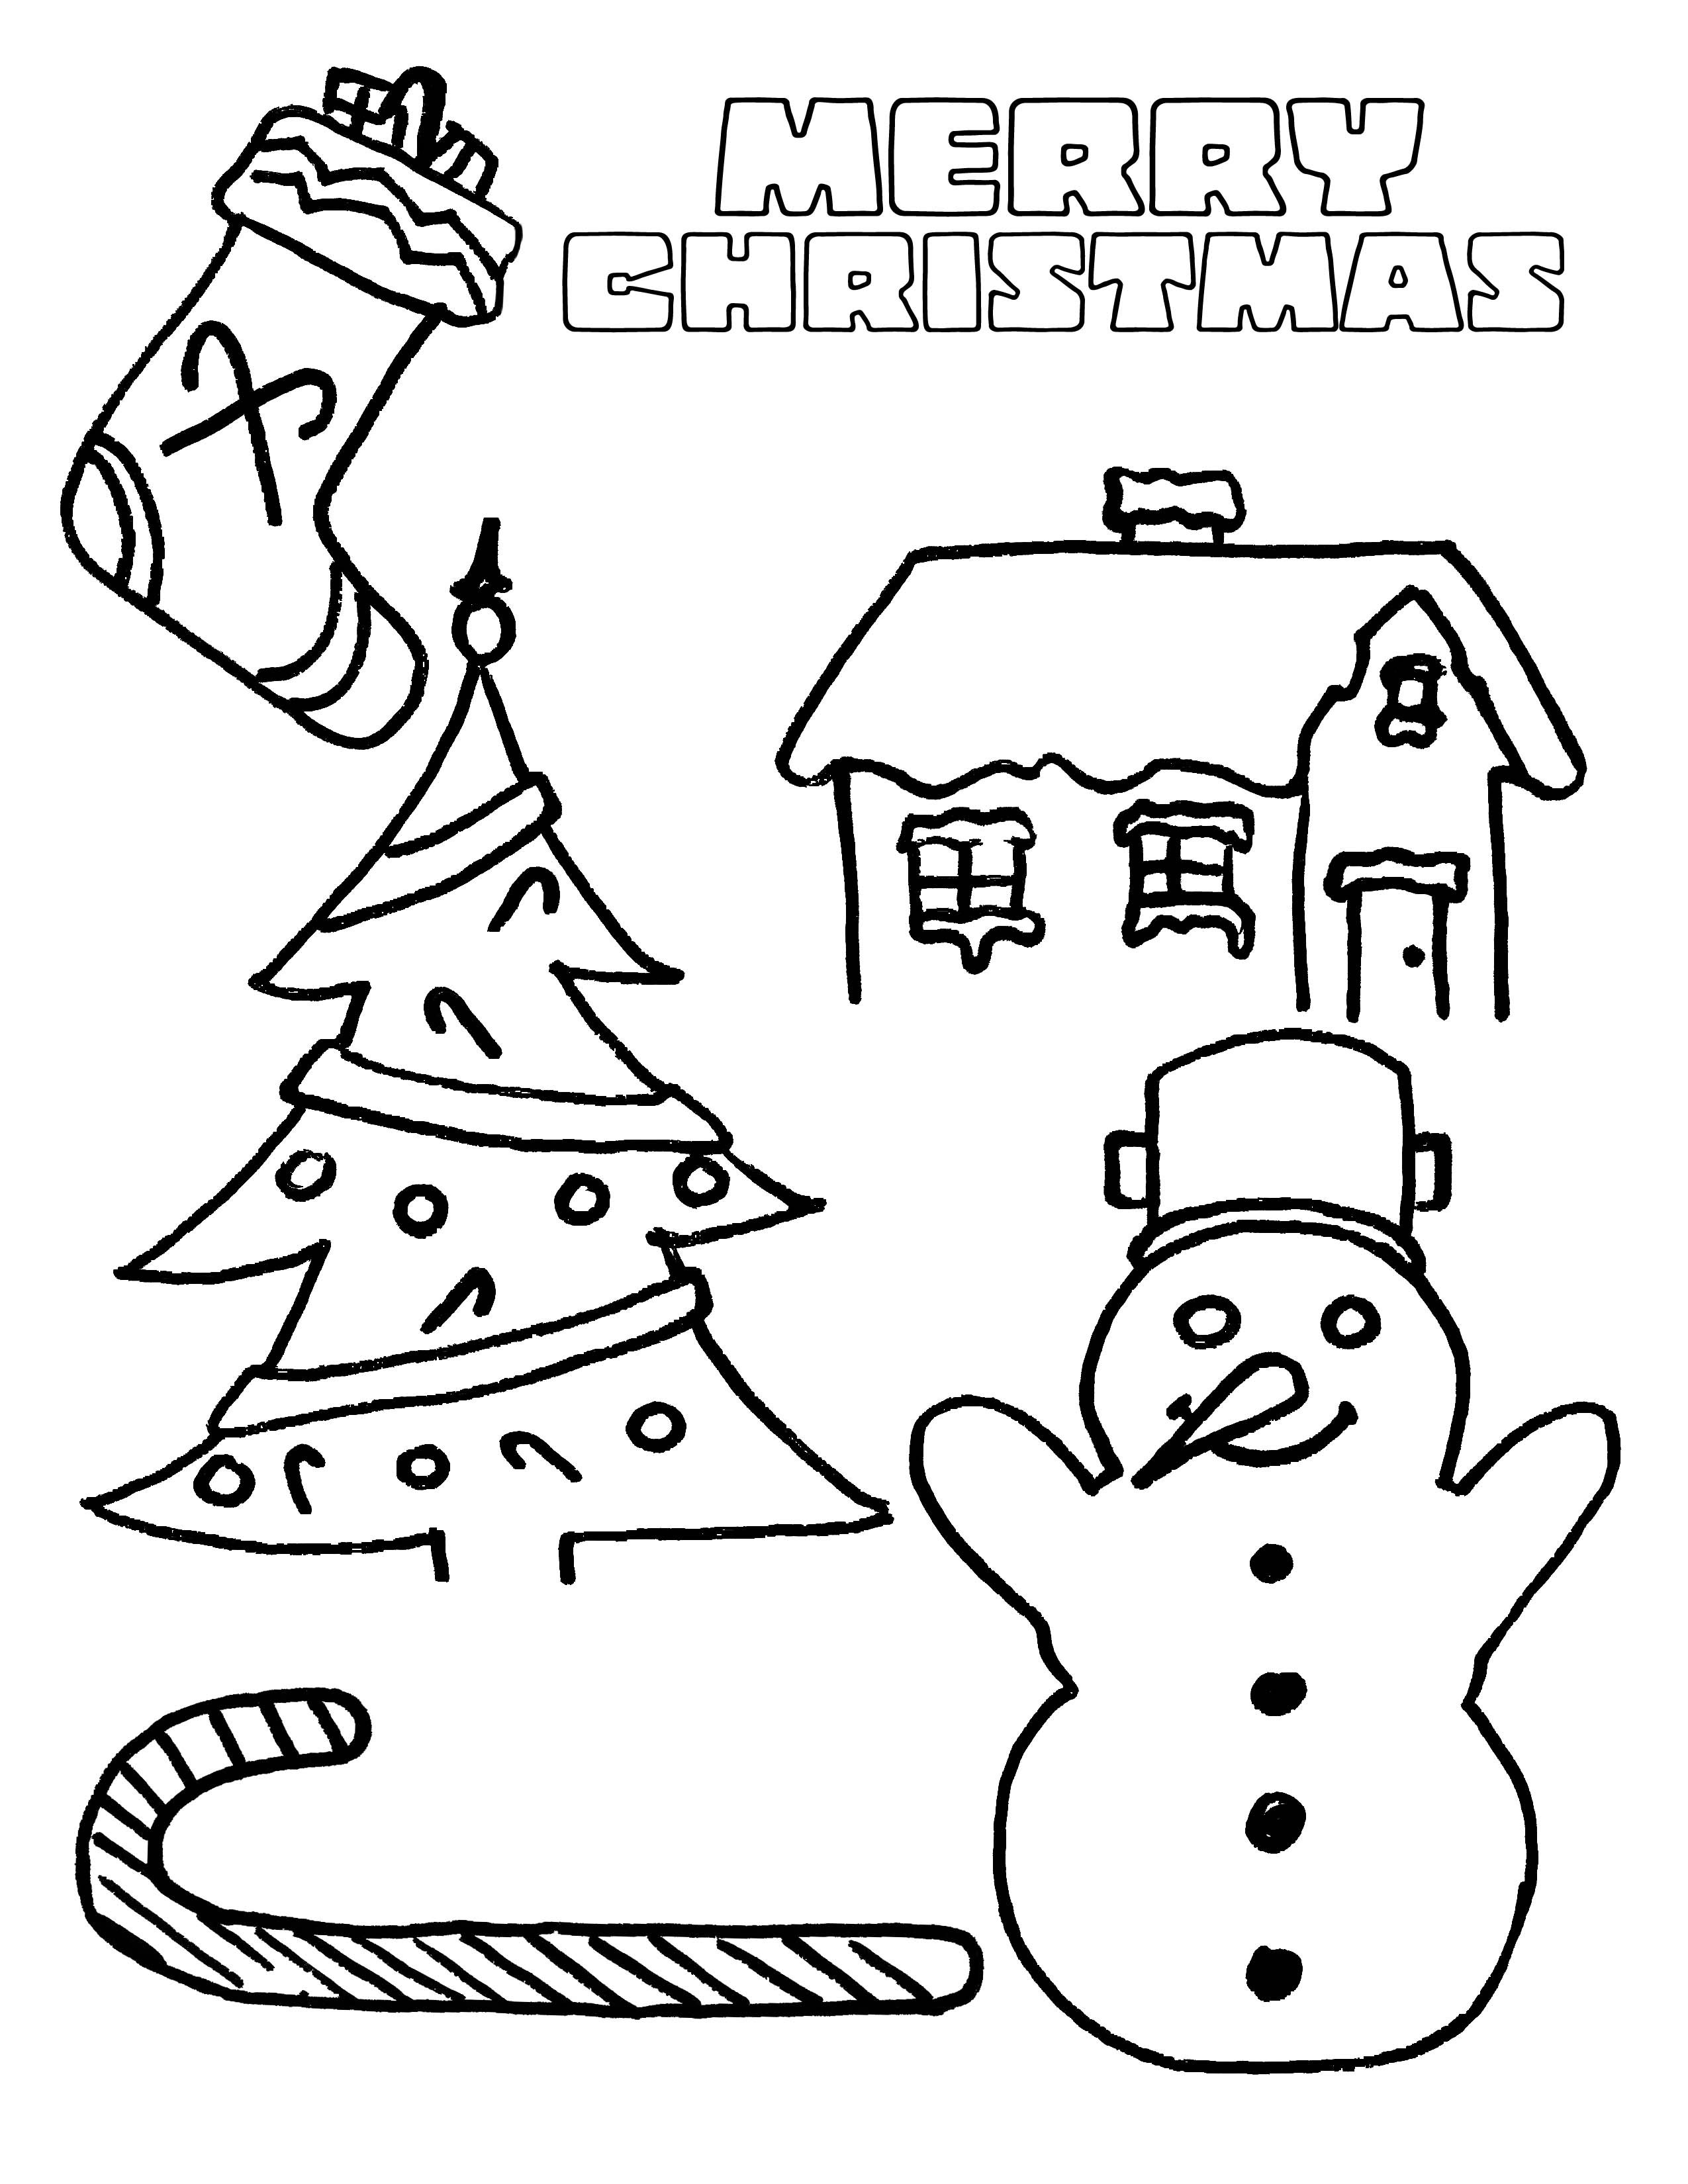 Free Printable Christmas Card Coloring Pages With Party Simplicity Page For Kids